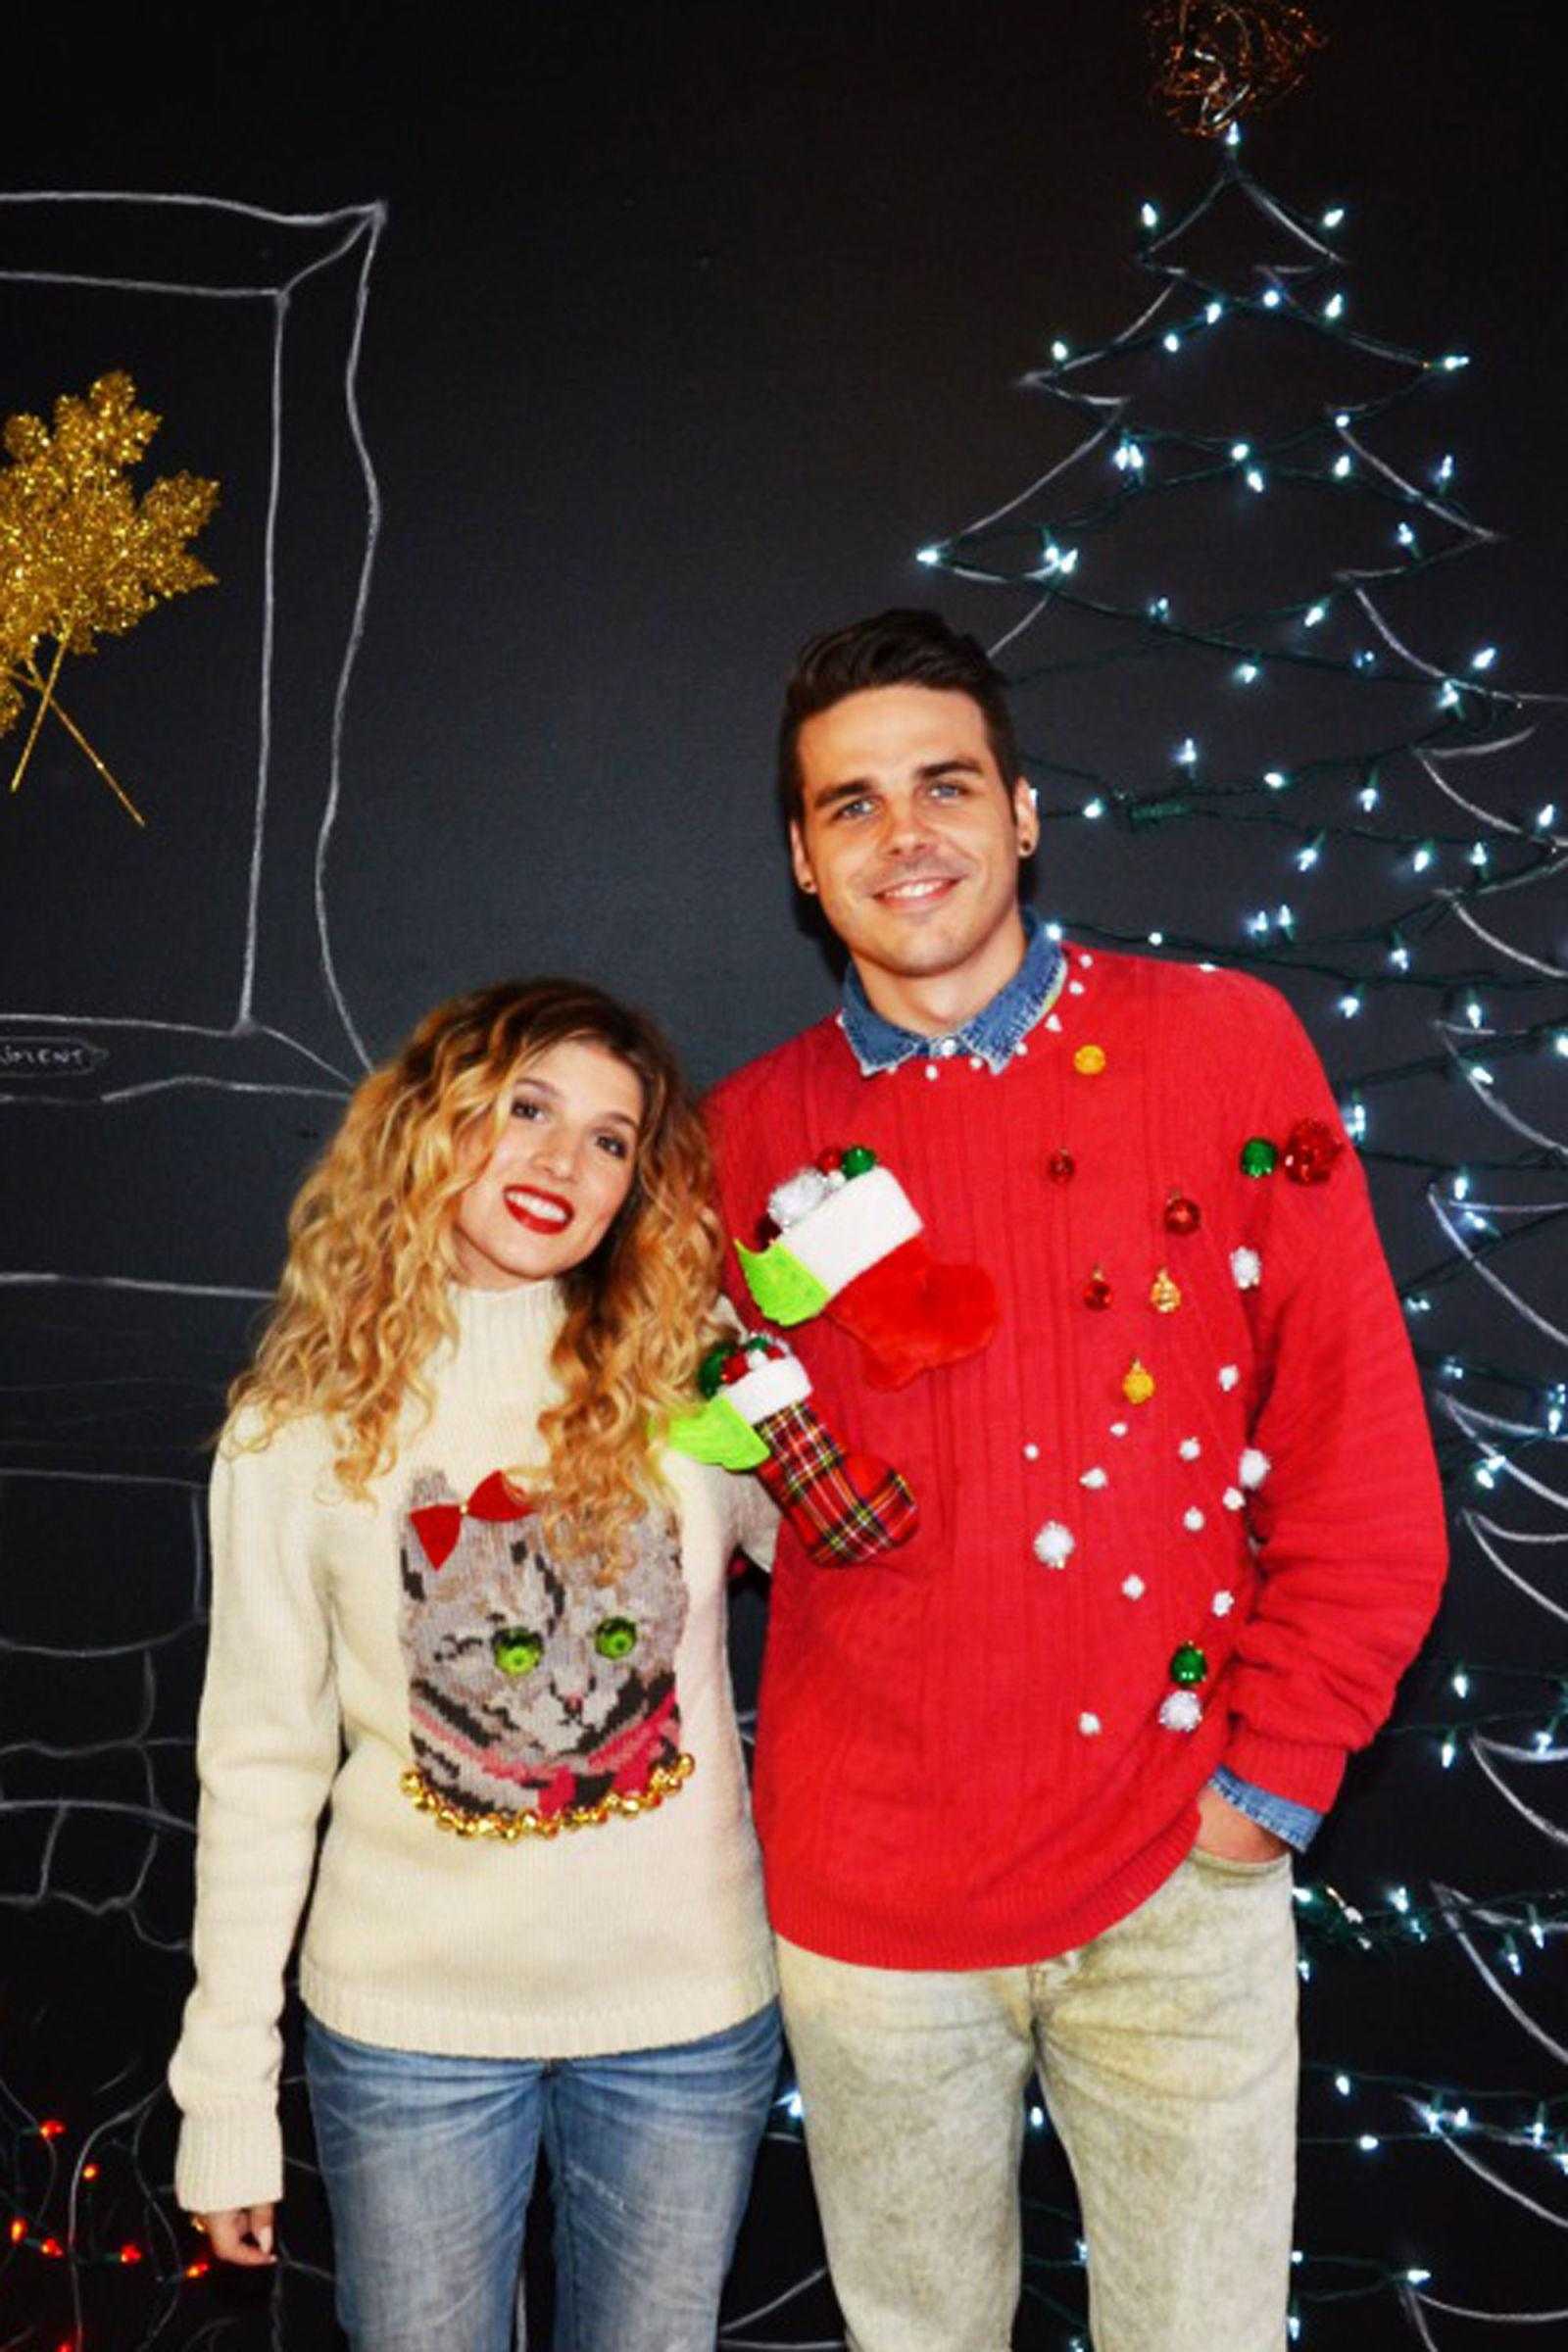 Ugly Christmas Sweater Ideas.These Diy Ugly Christmas Sweater Ideas Will Knock Everyone S